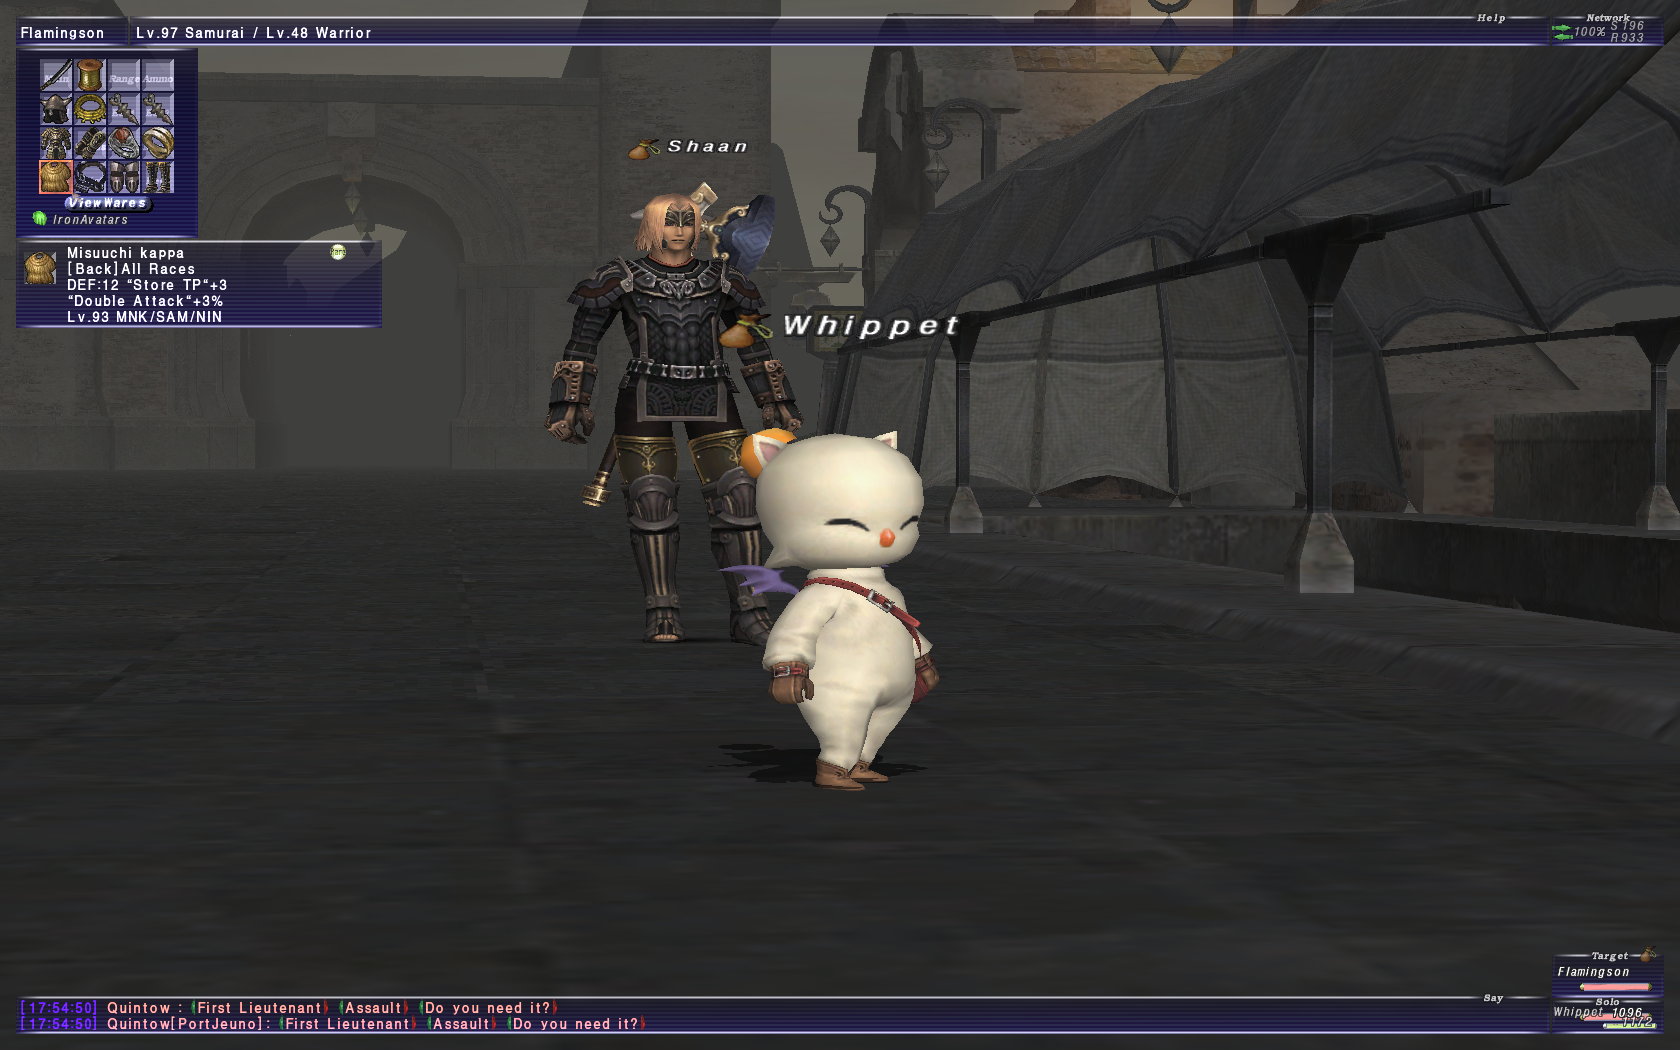 ratatapa ffxi your bear also thread time spend fucks unemployed paying this economy taxes rest players sucking would without cock addictions german full about they money their commenting plays into wouldnt were social angry xxiii player guys rude being trying impress decade almost gimpconfusedwtf jobs enough well playing started dont